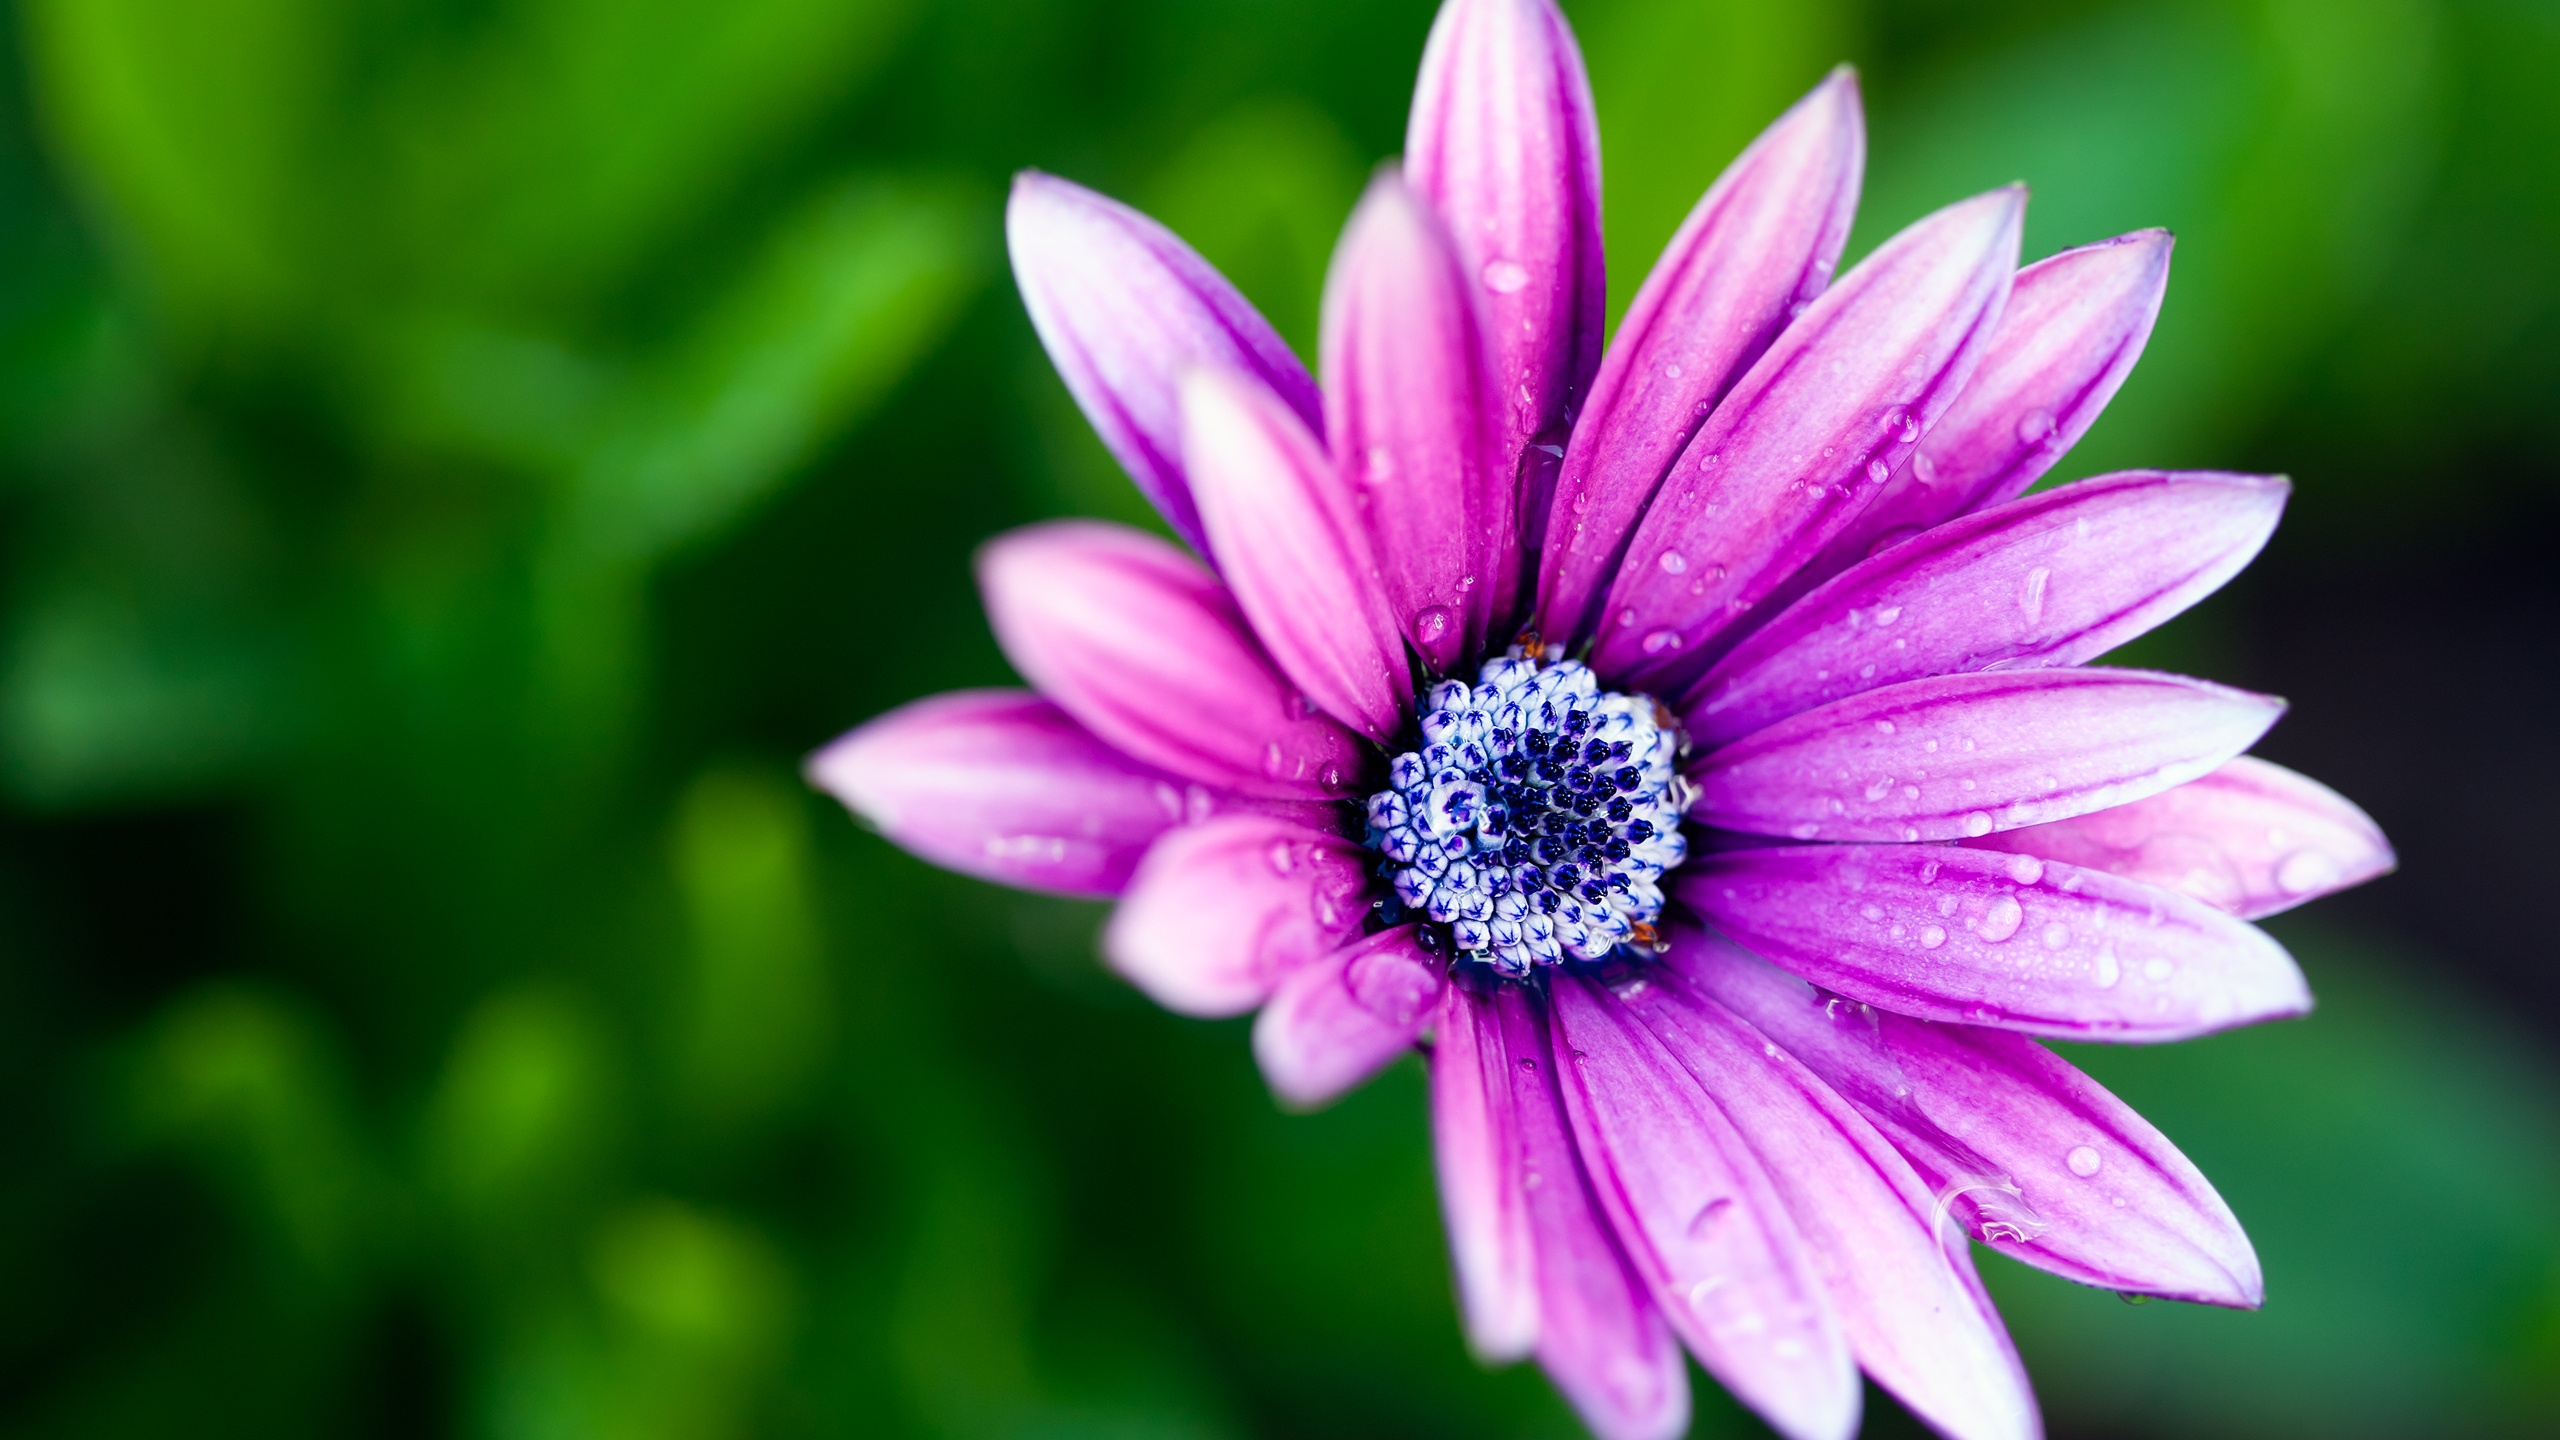 lavender flowers wallpapers 2560x1440 - photo #7